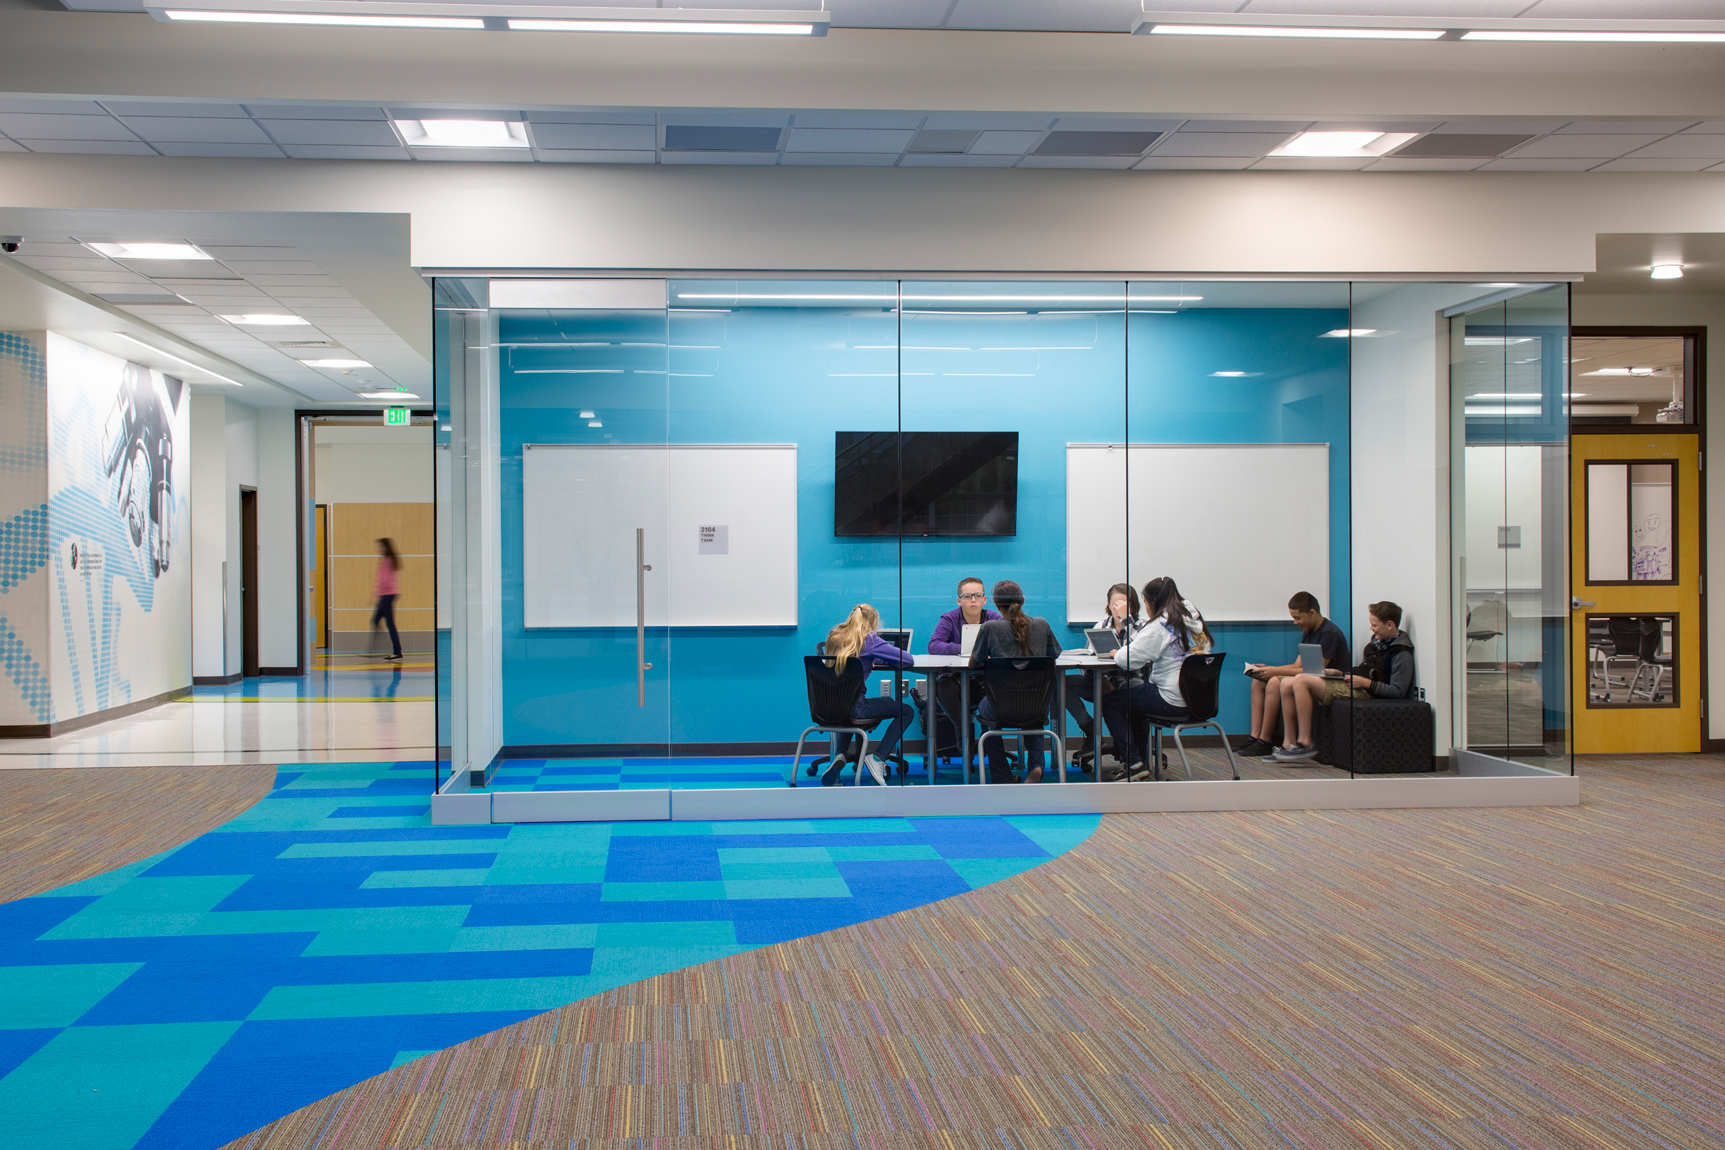 Views of students in private, glass enclosed study rooms at Mt. Jordan Middle School in Sandy Utah for MHTN Architects / Hogan & AssociatesArchitectural Photography by Paul Richer / RICHER IMAGES